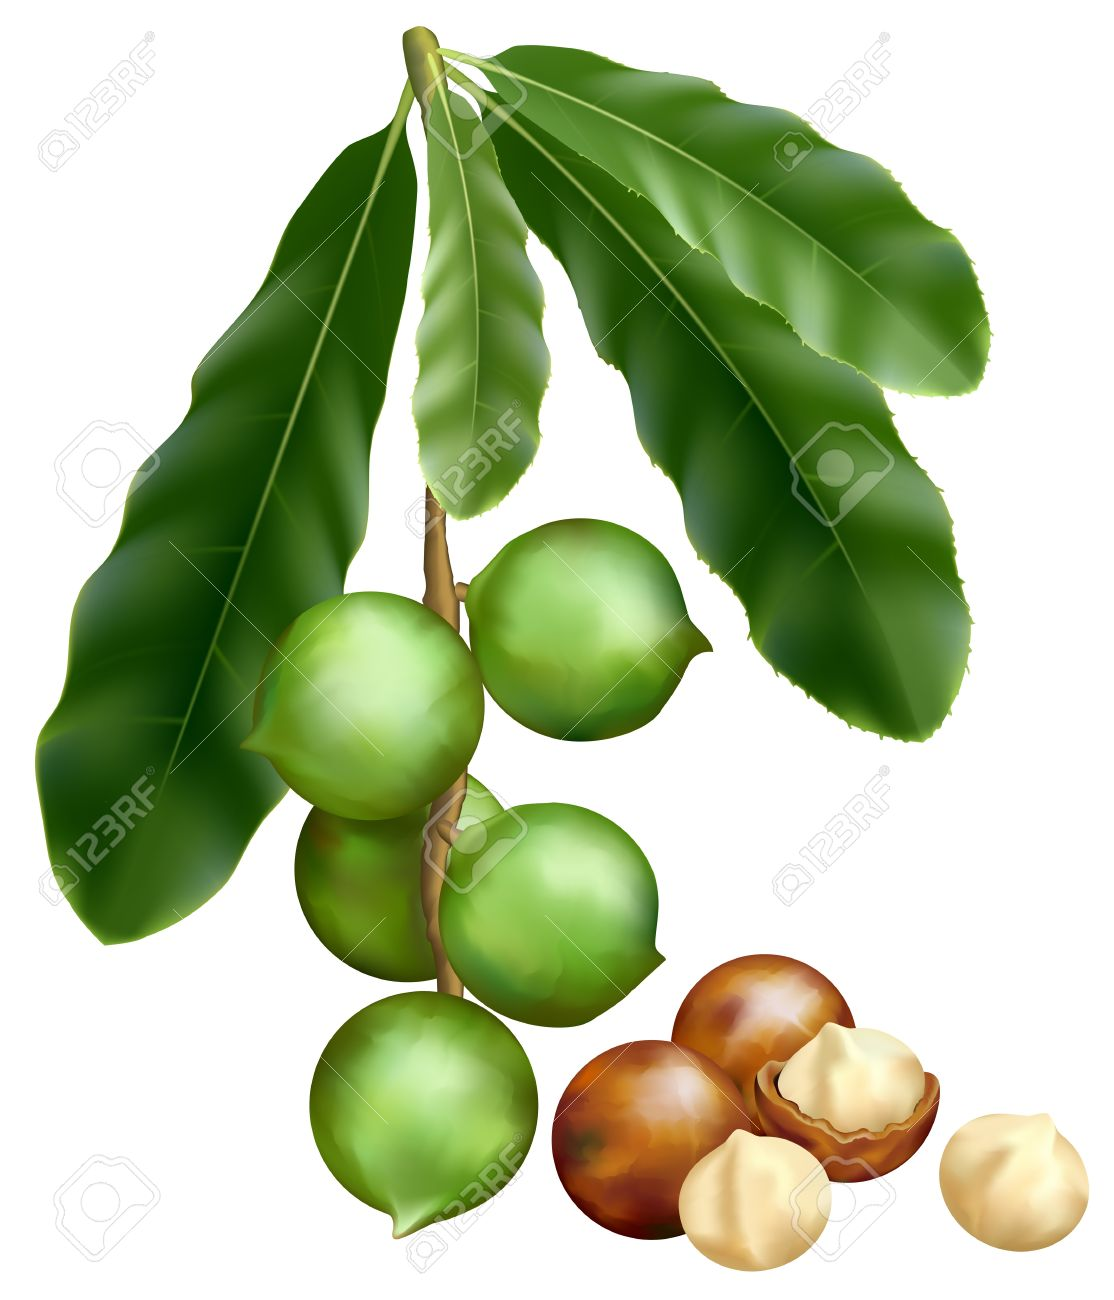 361 Macadamia Nut Stock Vector Illustration And Royalty Free.